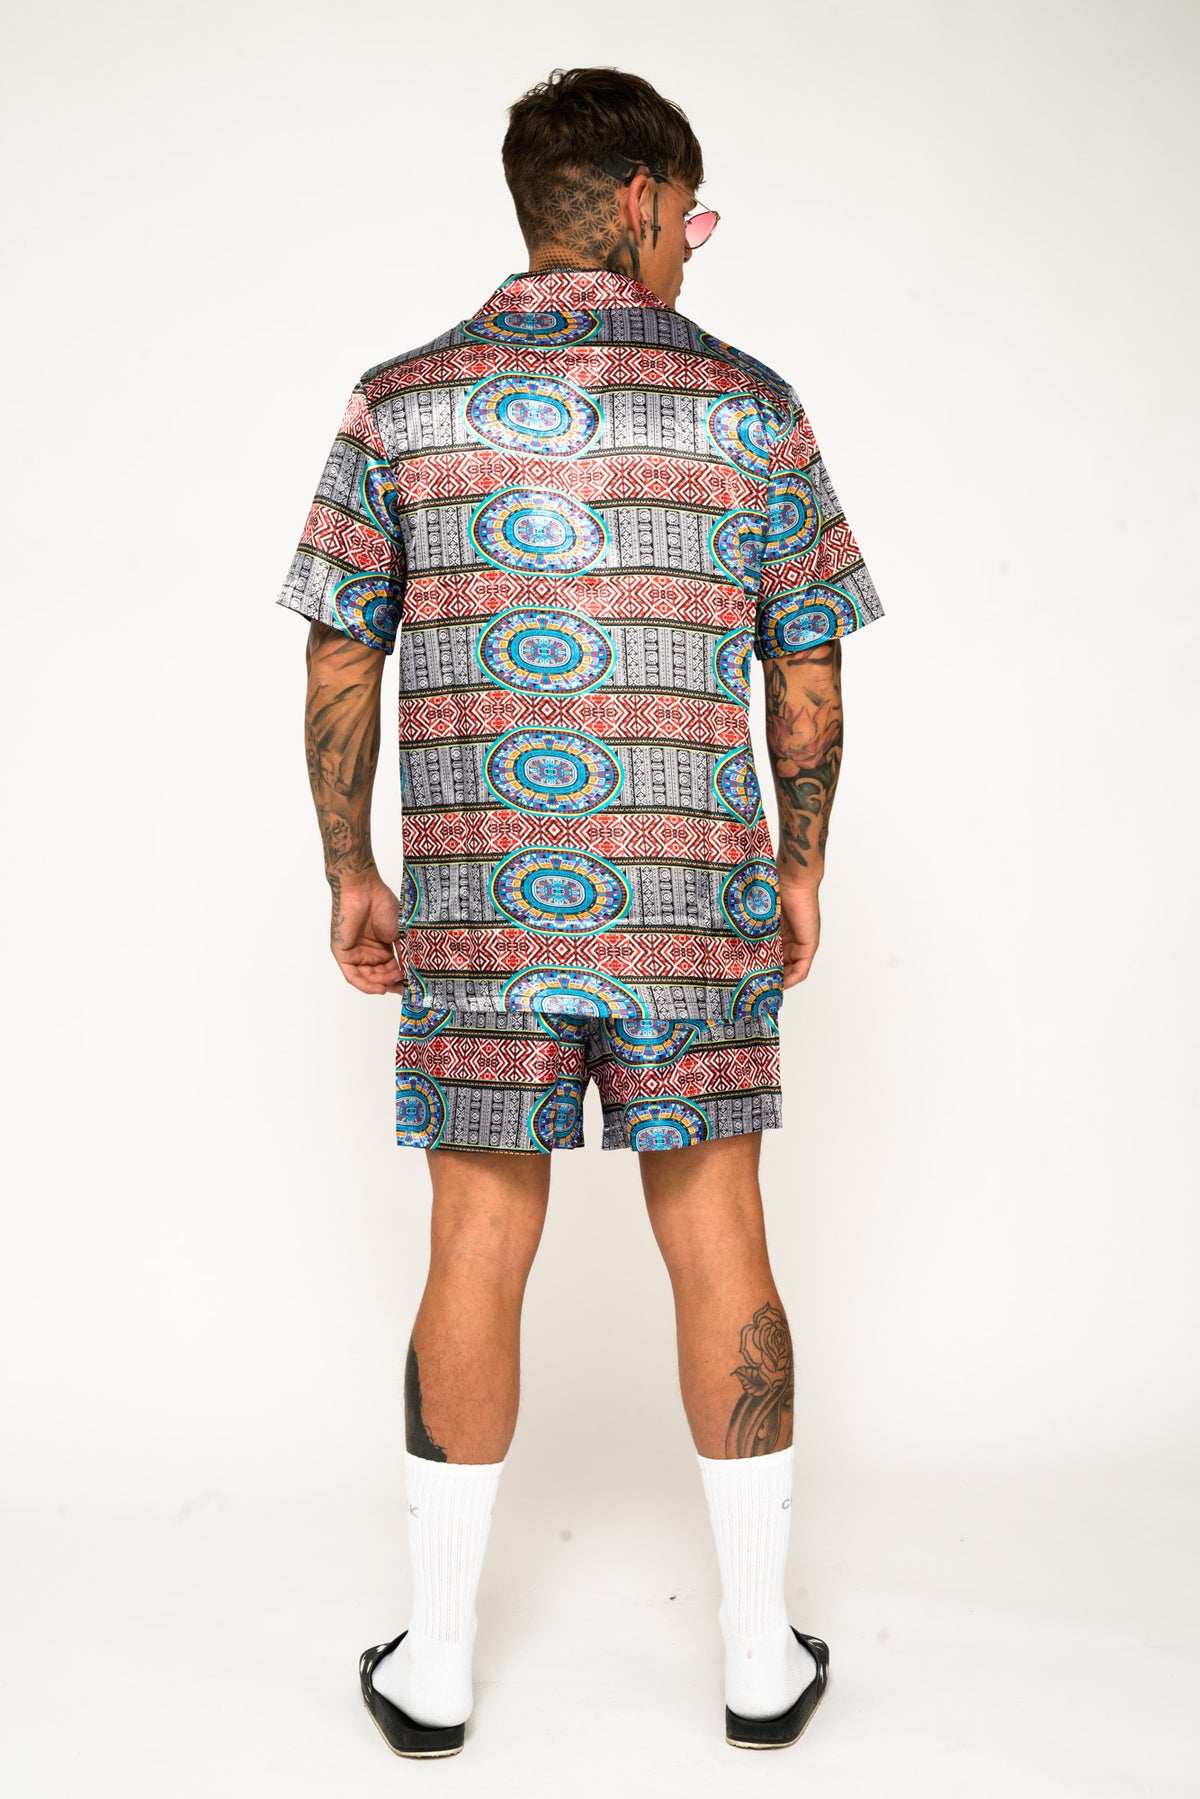 Roadies of 66 - Aztec Print Revere Collar Shorts